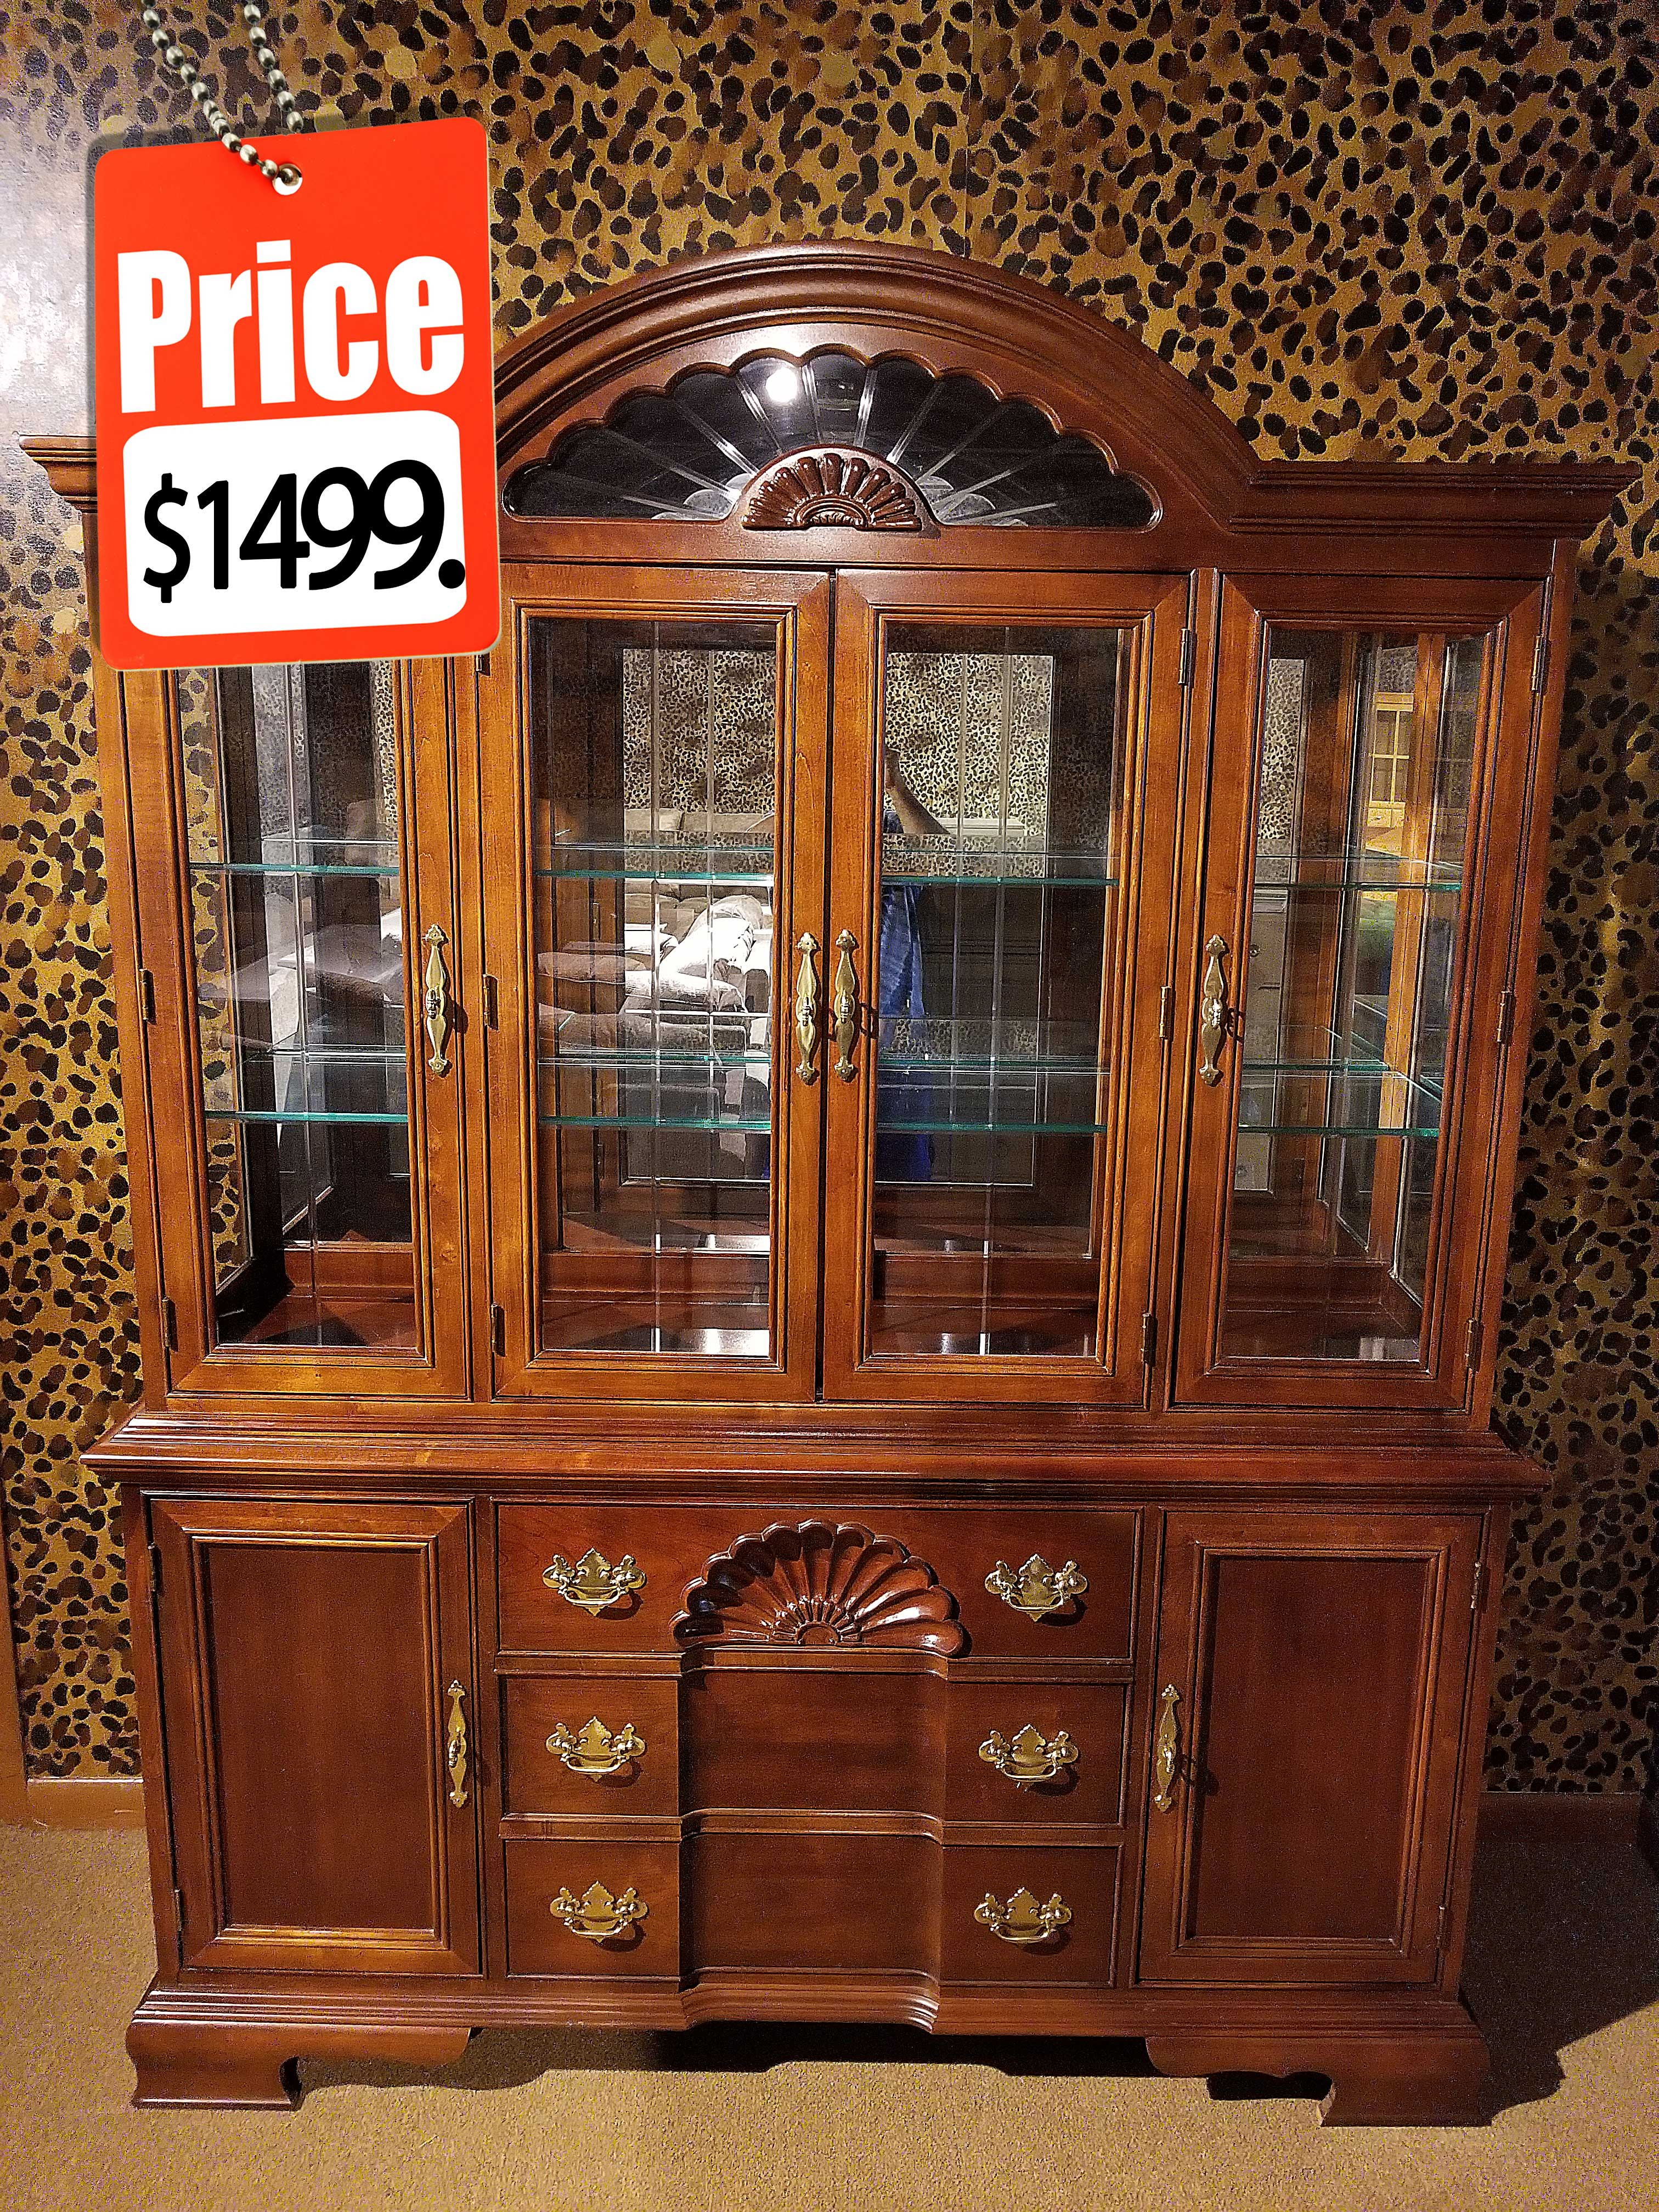 We Buy And Sell Used Furniture Farmingdale Long Island N Y